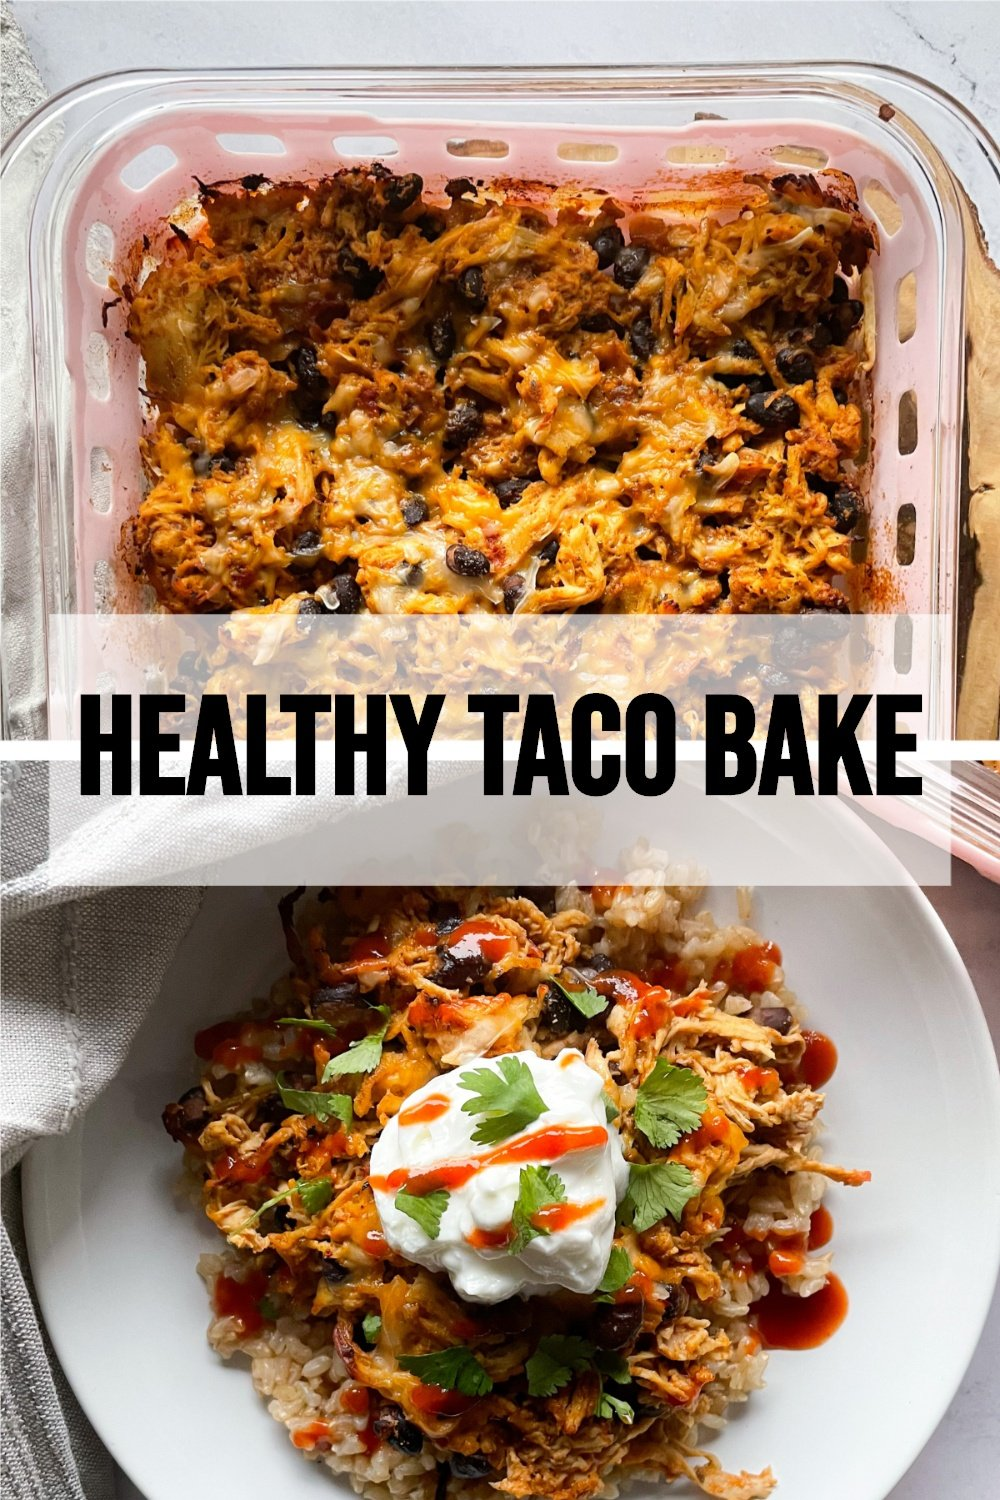 Taco Bake collage photo - one photo in baking dish and one with portion on a plate